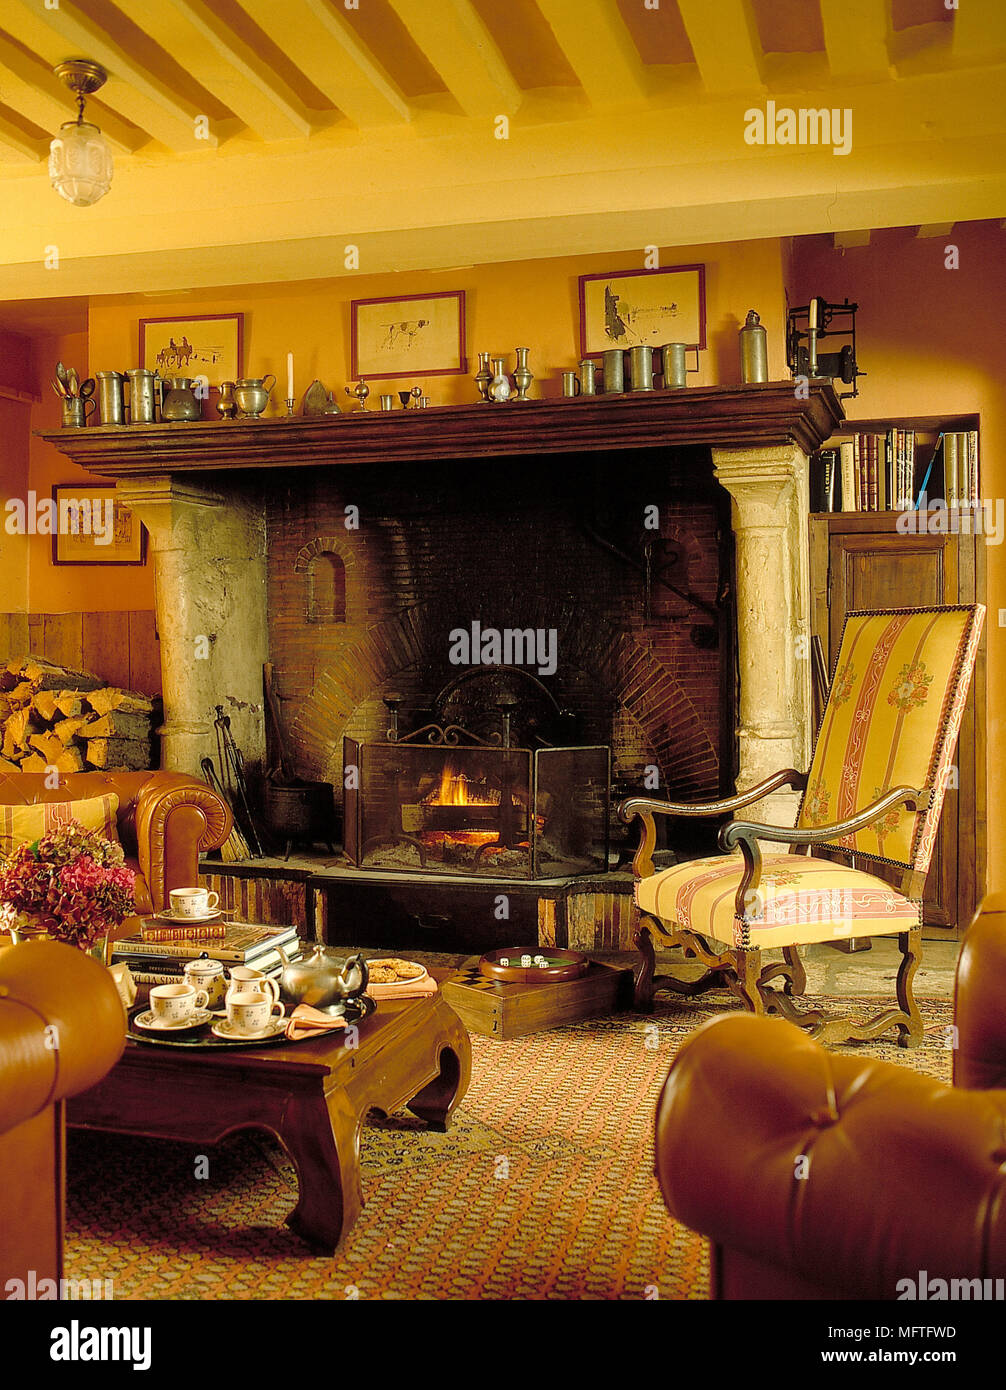 Traditional sitting room yellow walls beamed ceiling lit fire in